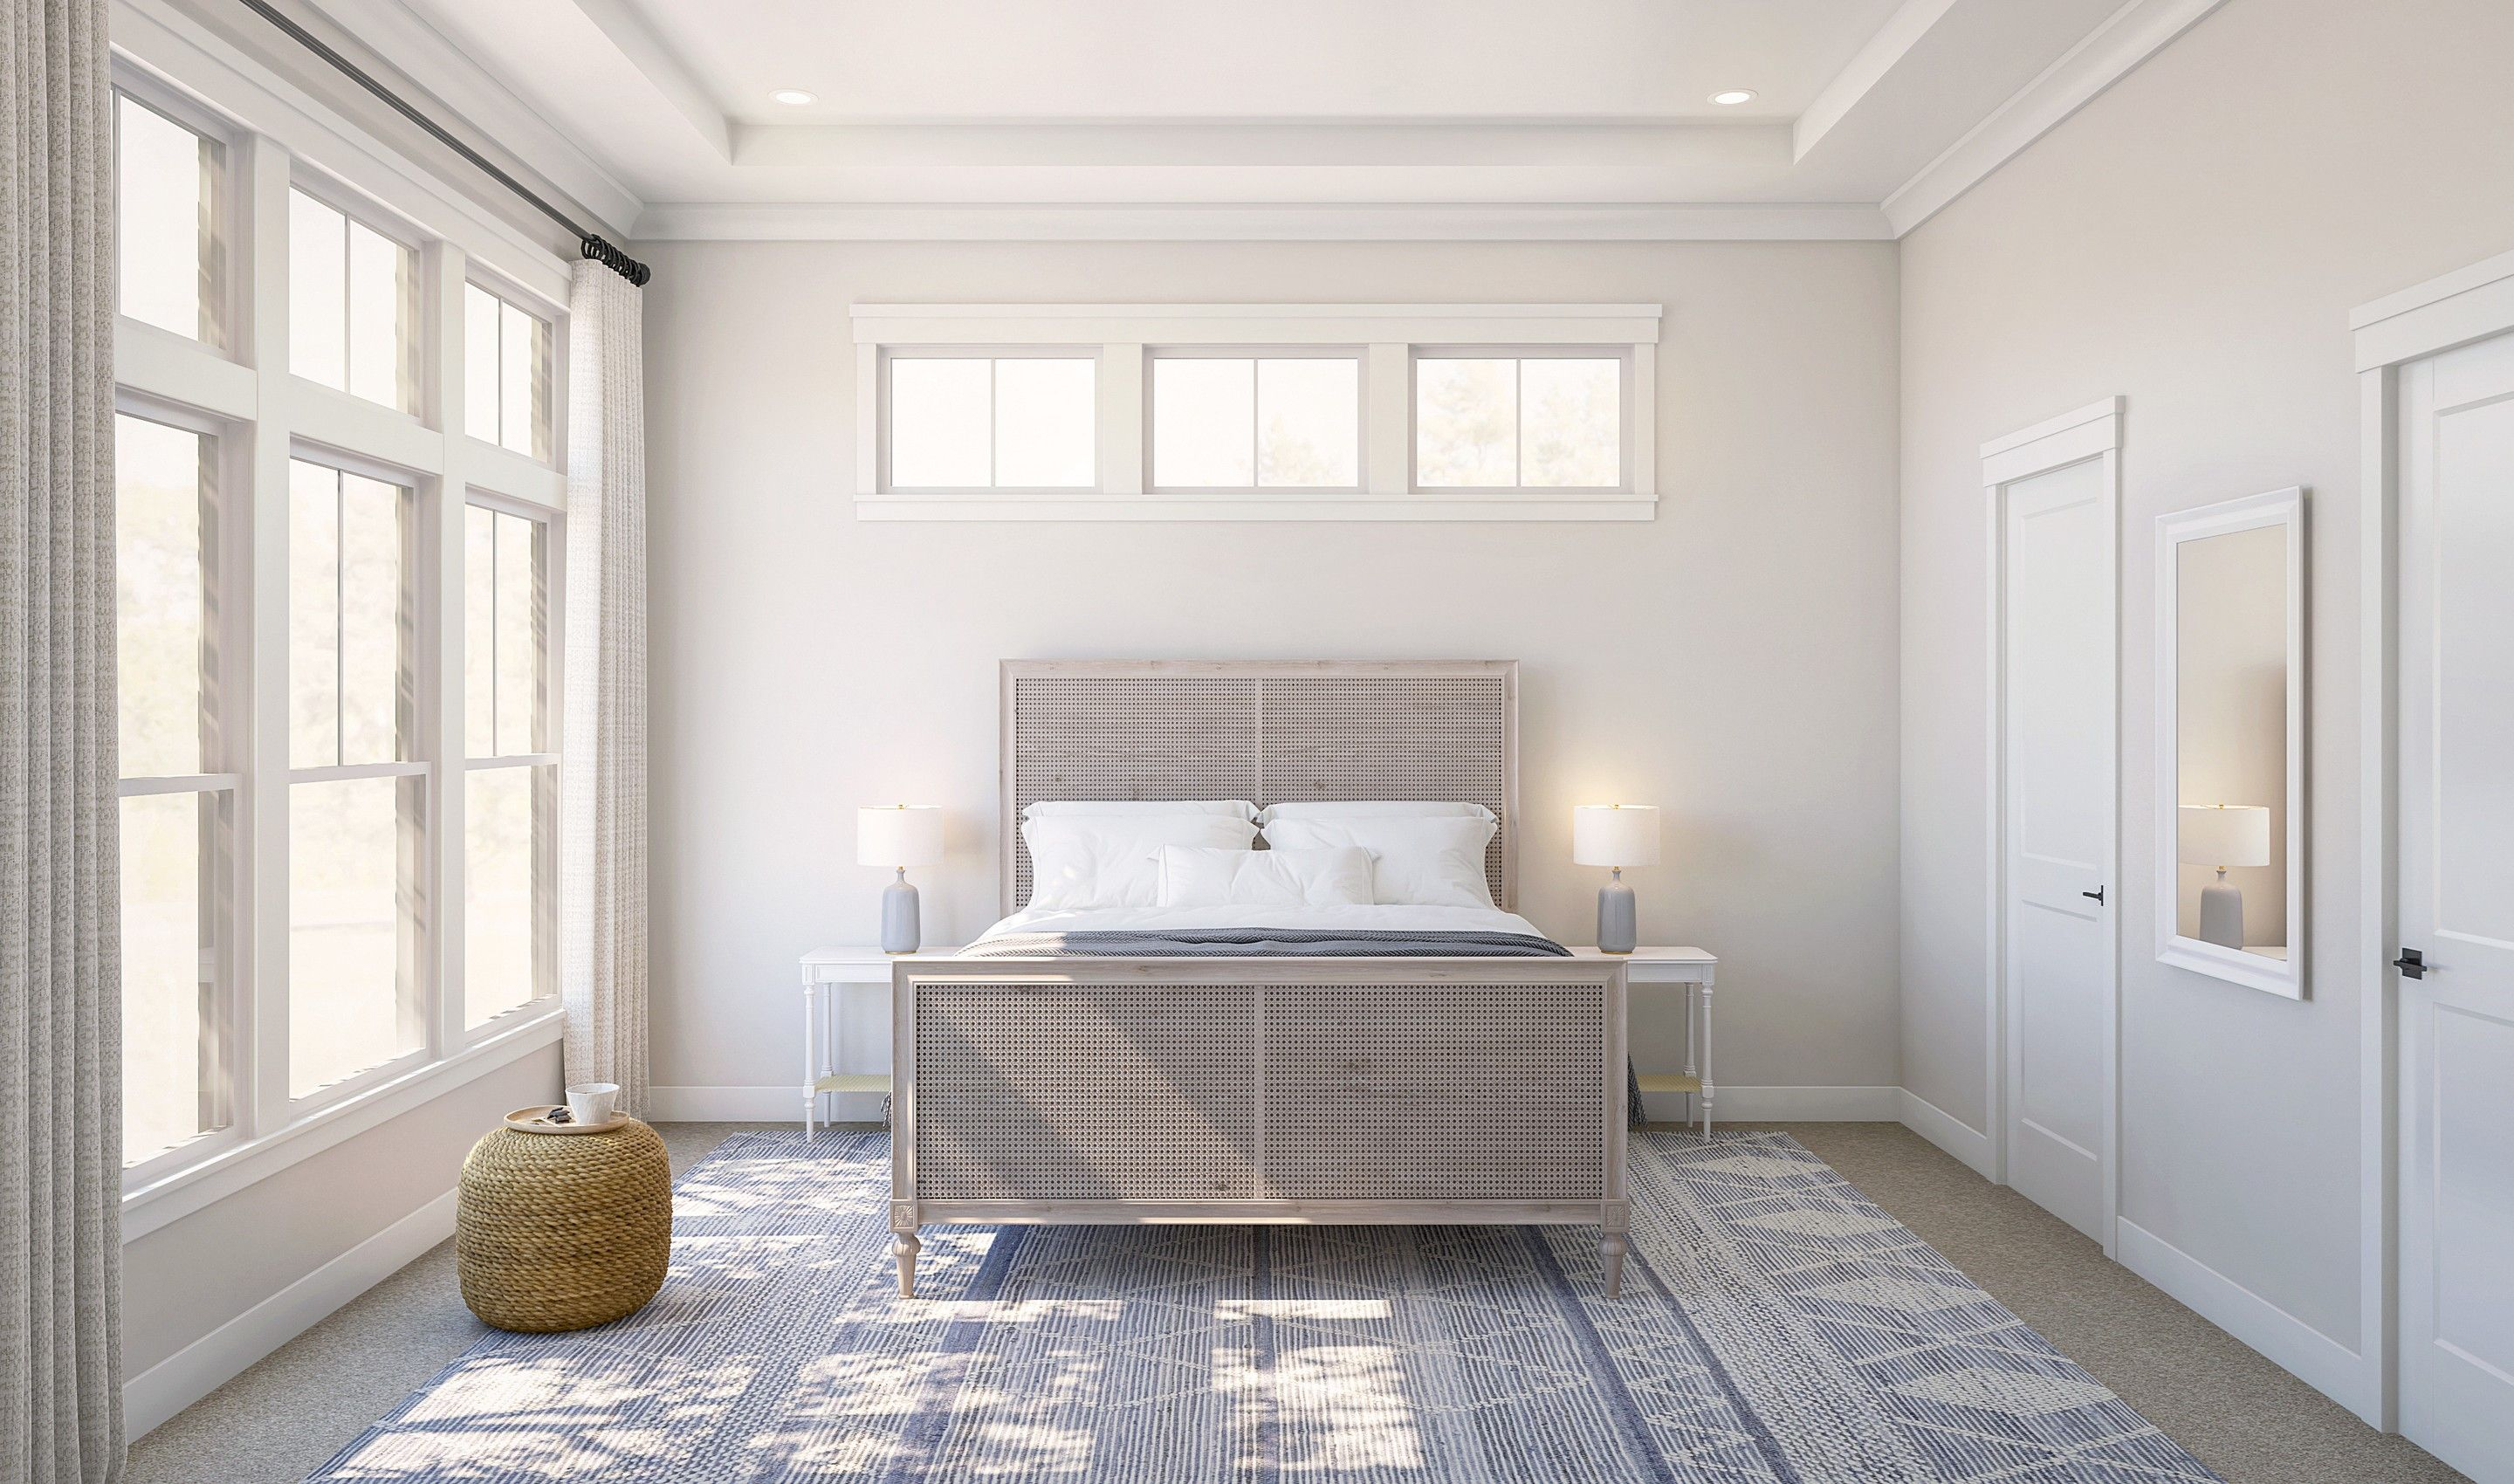 Bedroom featured in the Killarney II By K. Hovnanian's® Four Seasons in Monmouth County, NJ